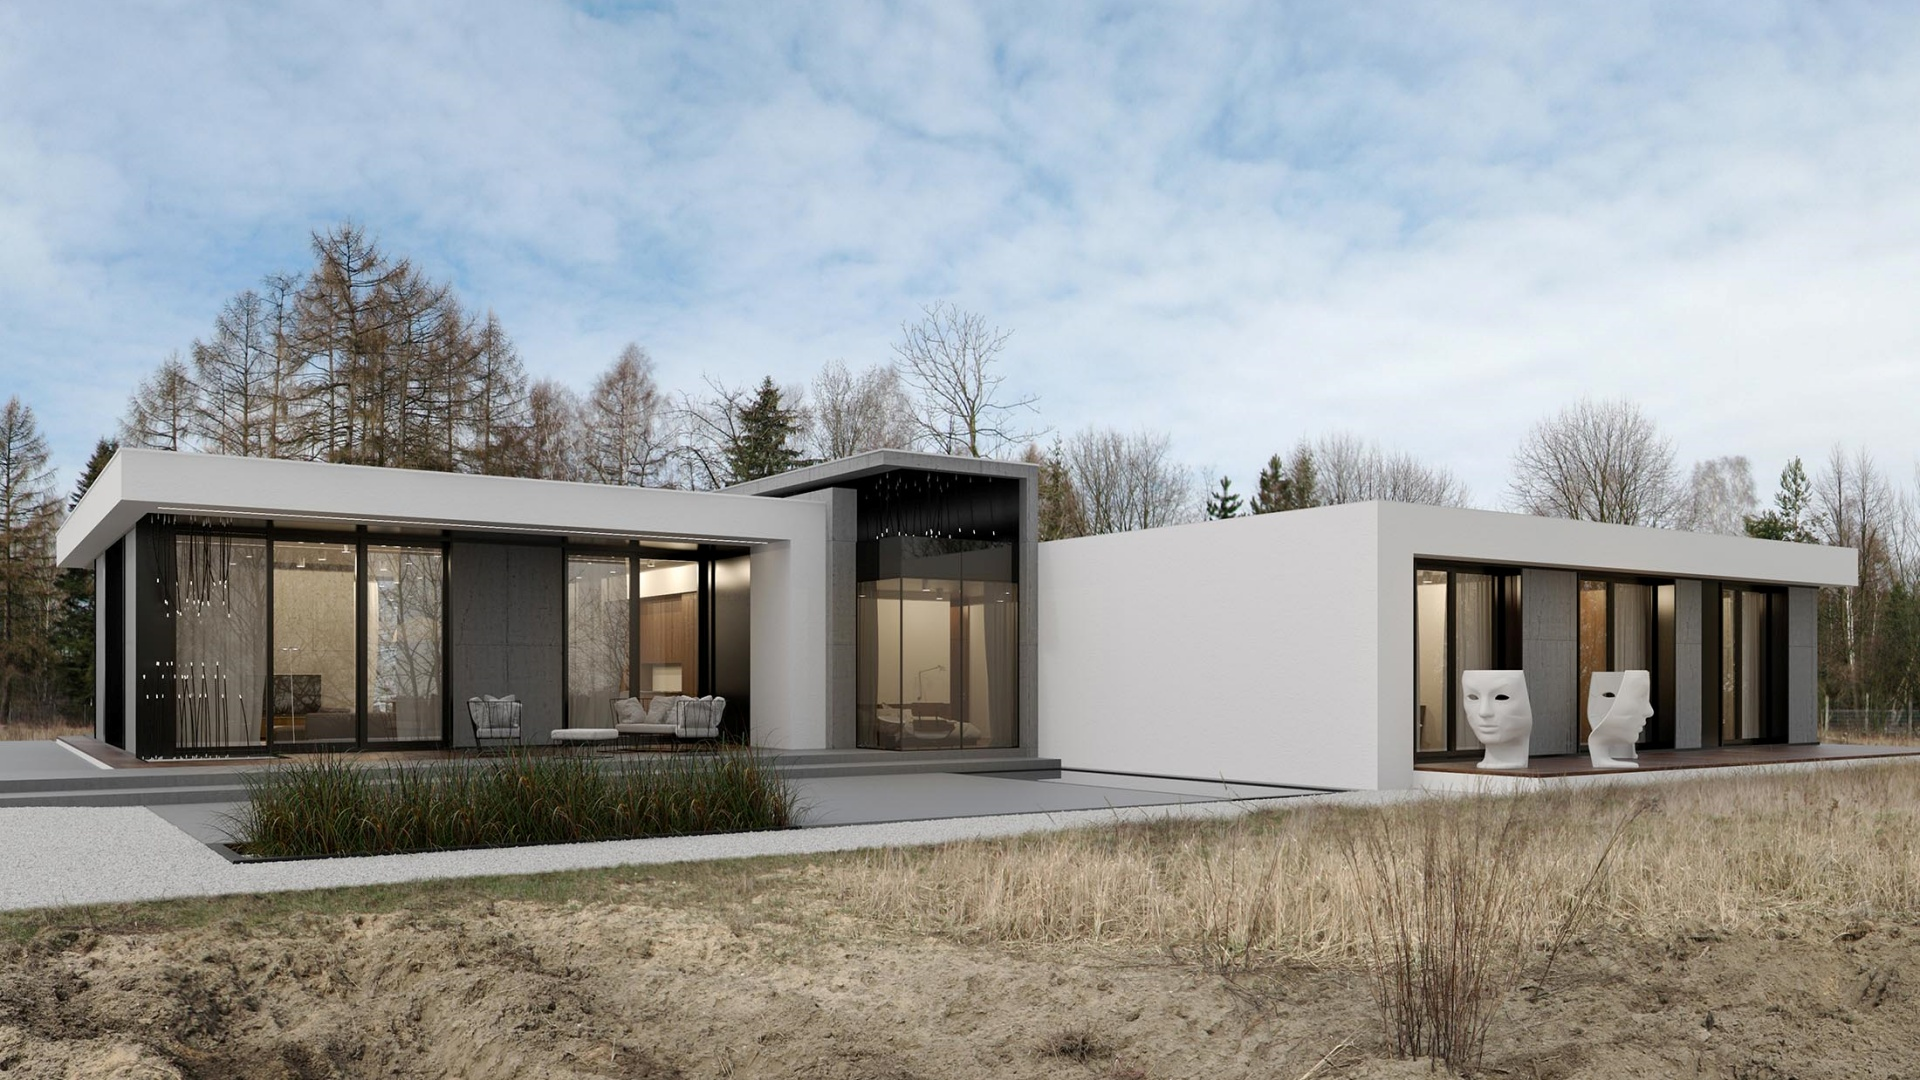 RE: CONCRETE HOUSE projektu architekta Marcina Tomaszewskiego REFORM Architekt